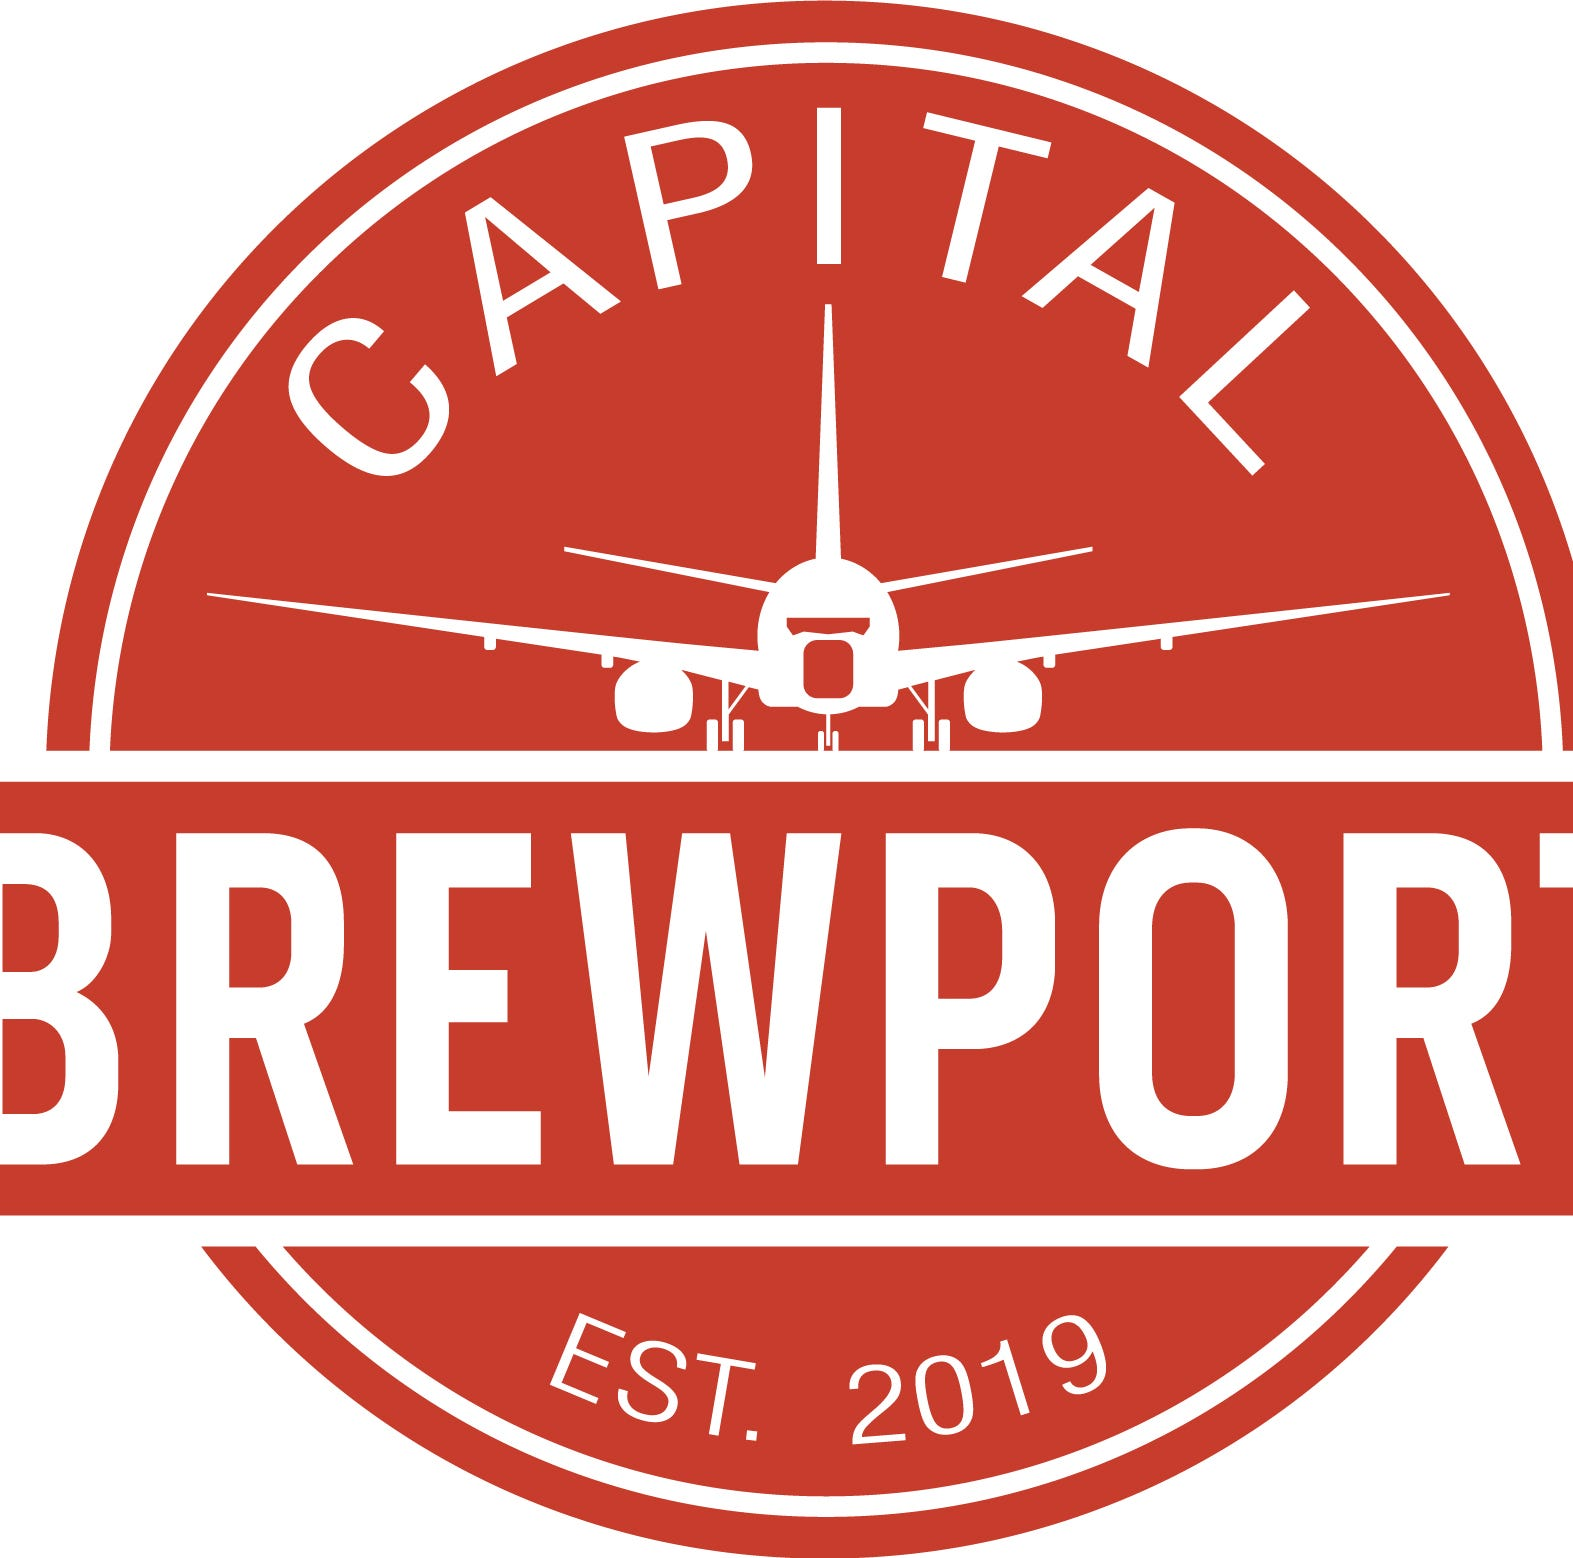 New restaurant, Capital Brewport, to open next month at Capital Region International Airport